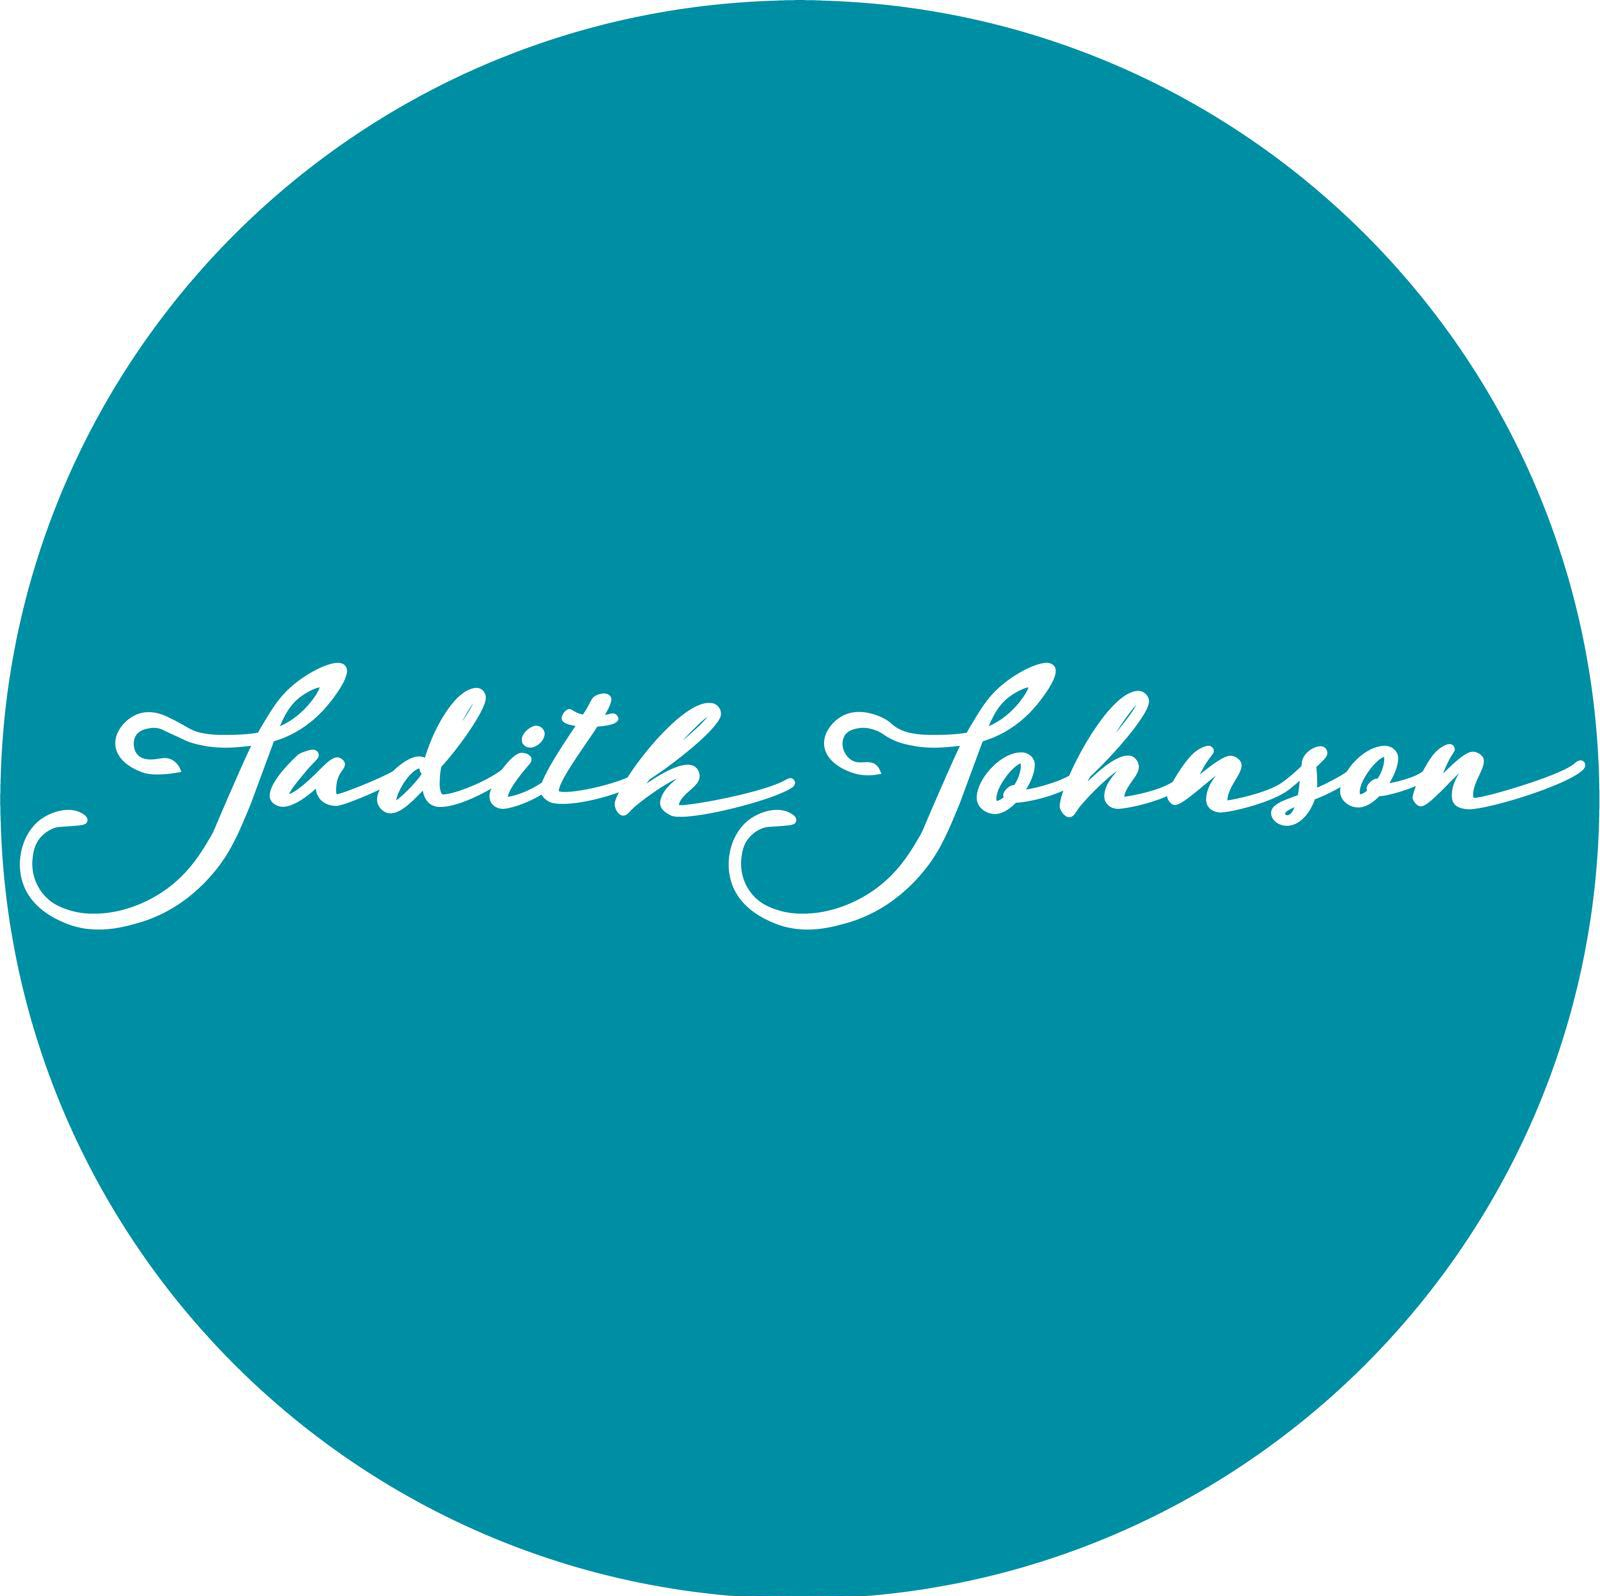 Judith Johnson PhD